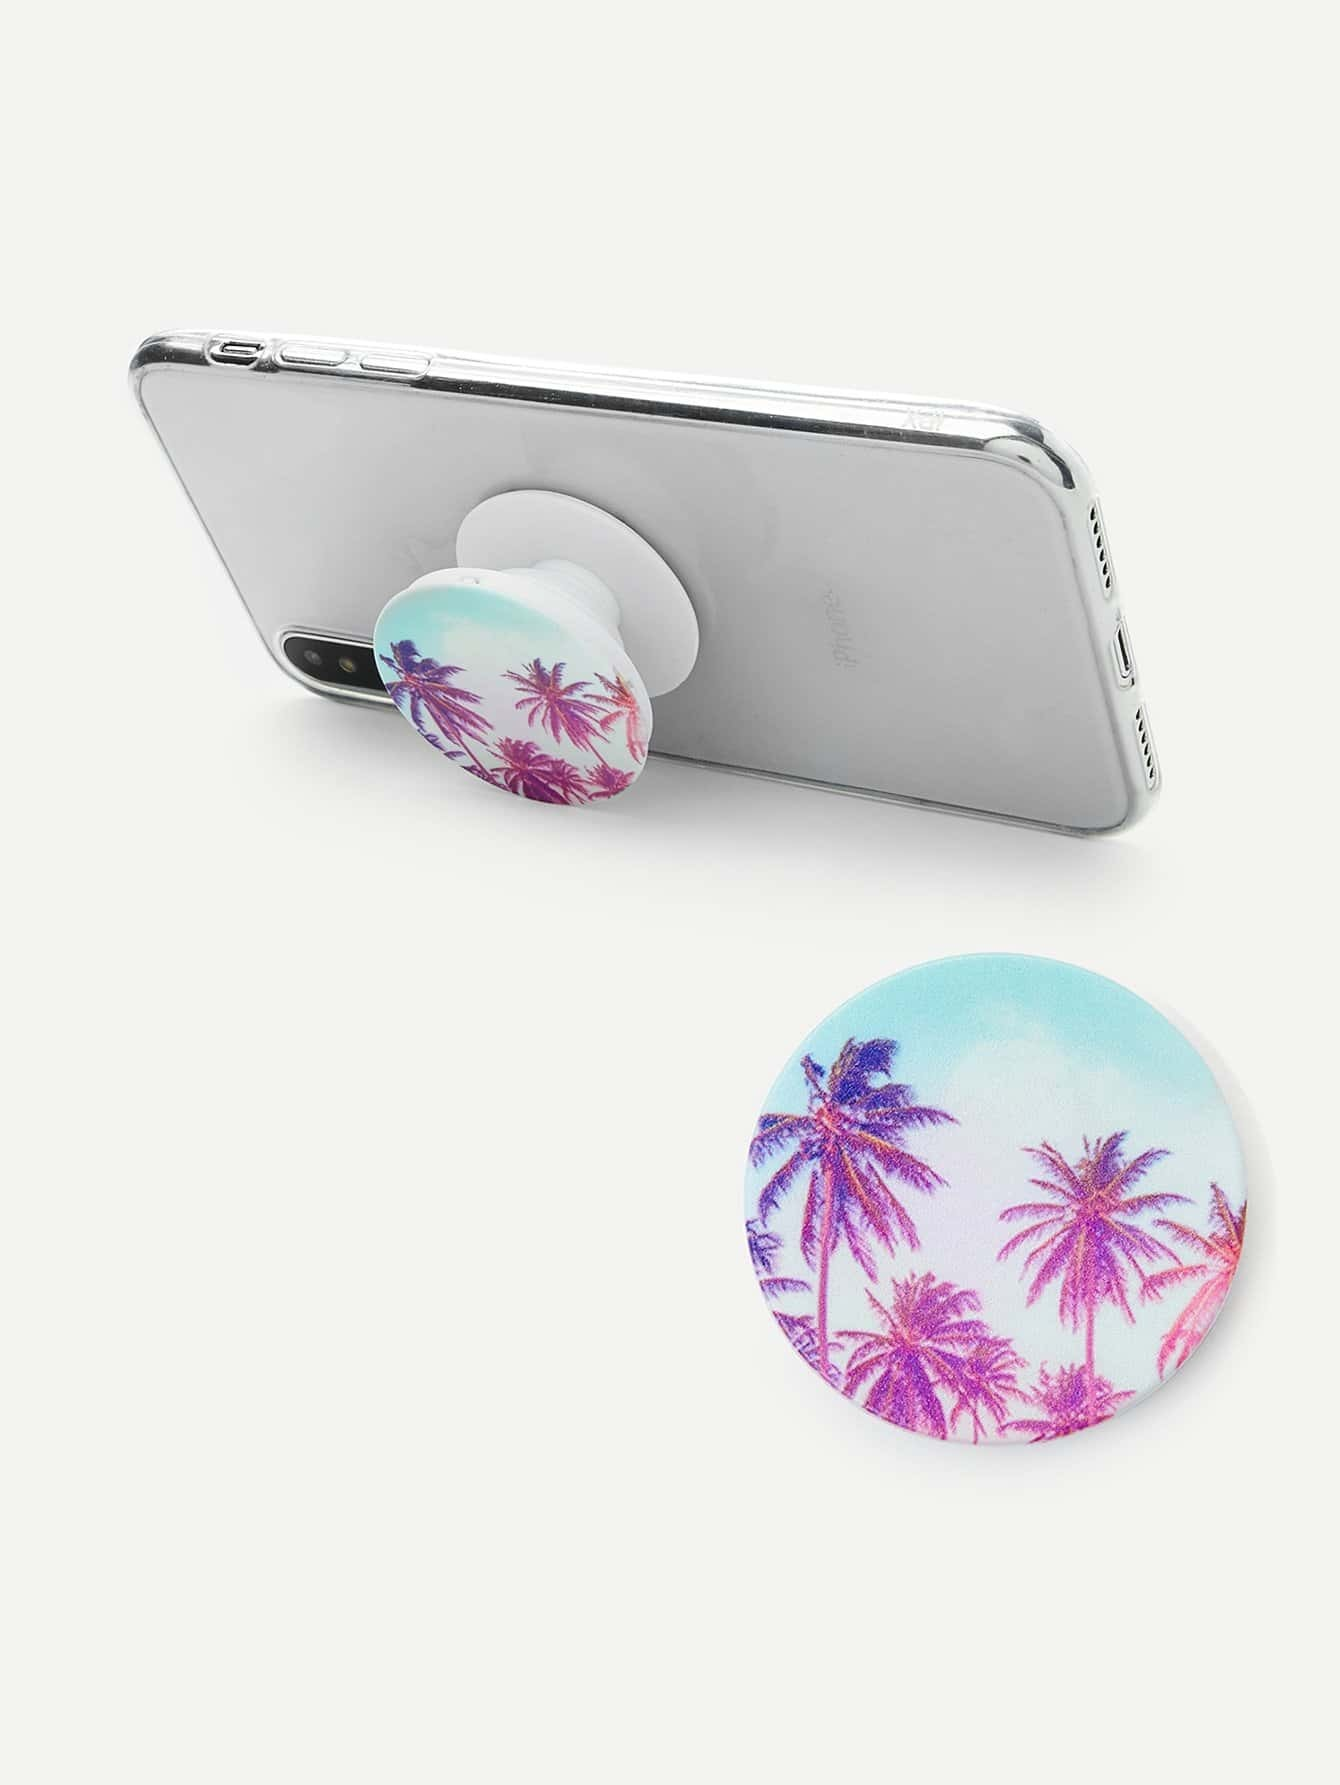 Palm Tree Pattern Portable Phone Holder convenient folding portable multifunctional phone holder red